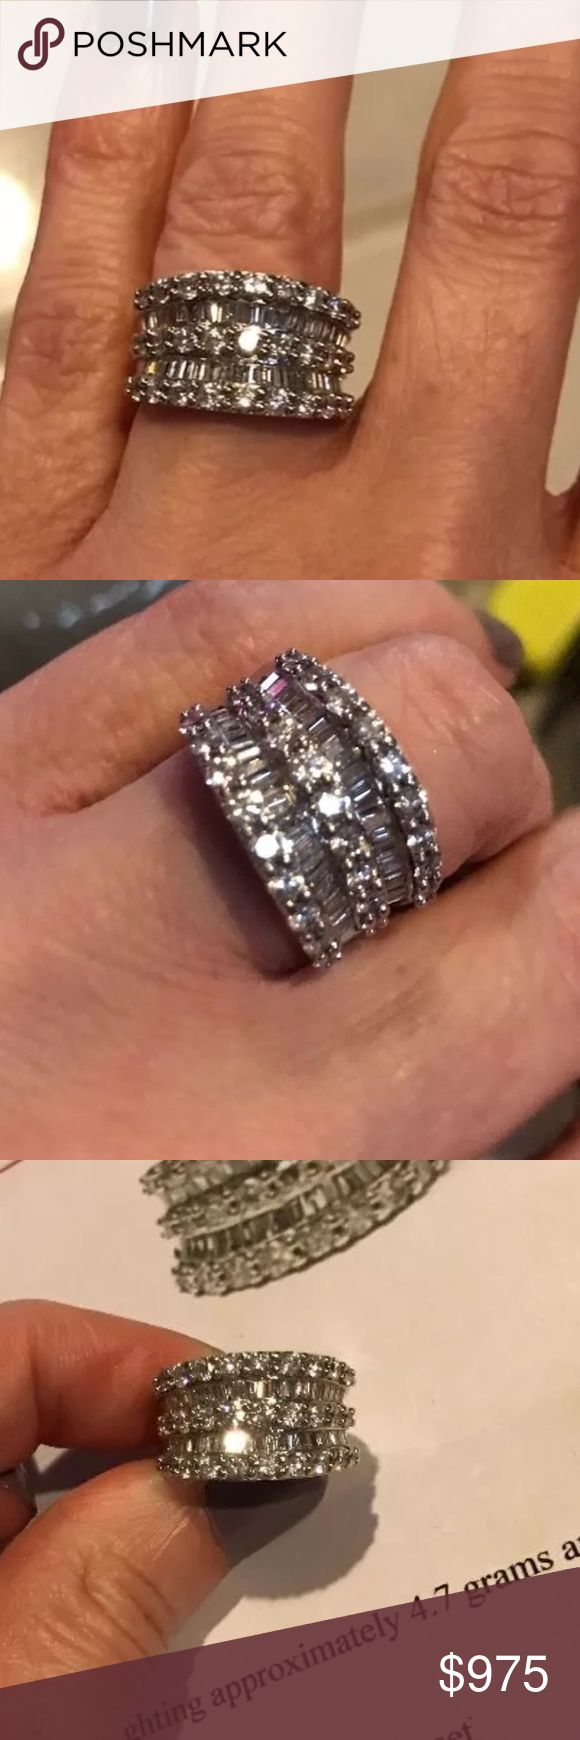 *SOLD* 2.20 carat 14k white gold diamond ring Amazing 2.20 carat 14k white gold diamond ring! High quality diamonds! Retail around $8000! Comes with appraisal! Super great deal! Jewelry Rings